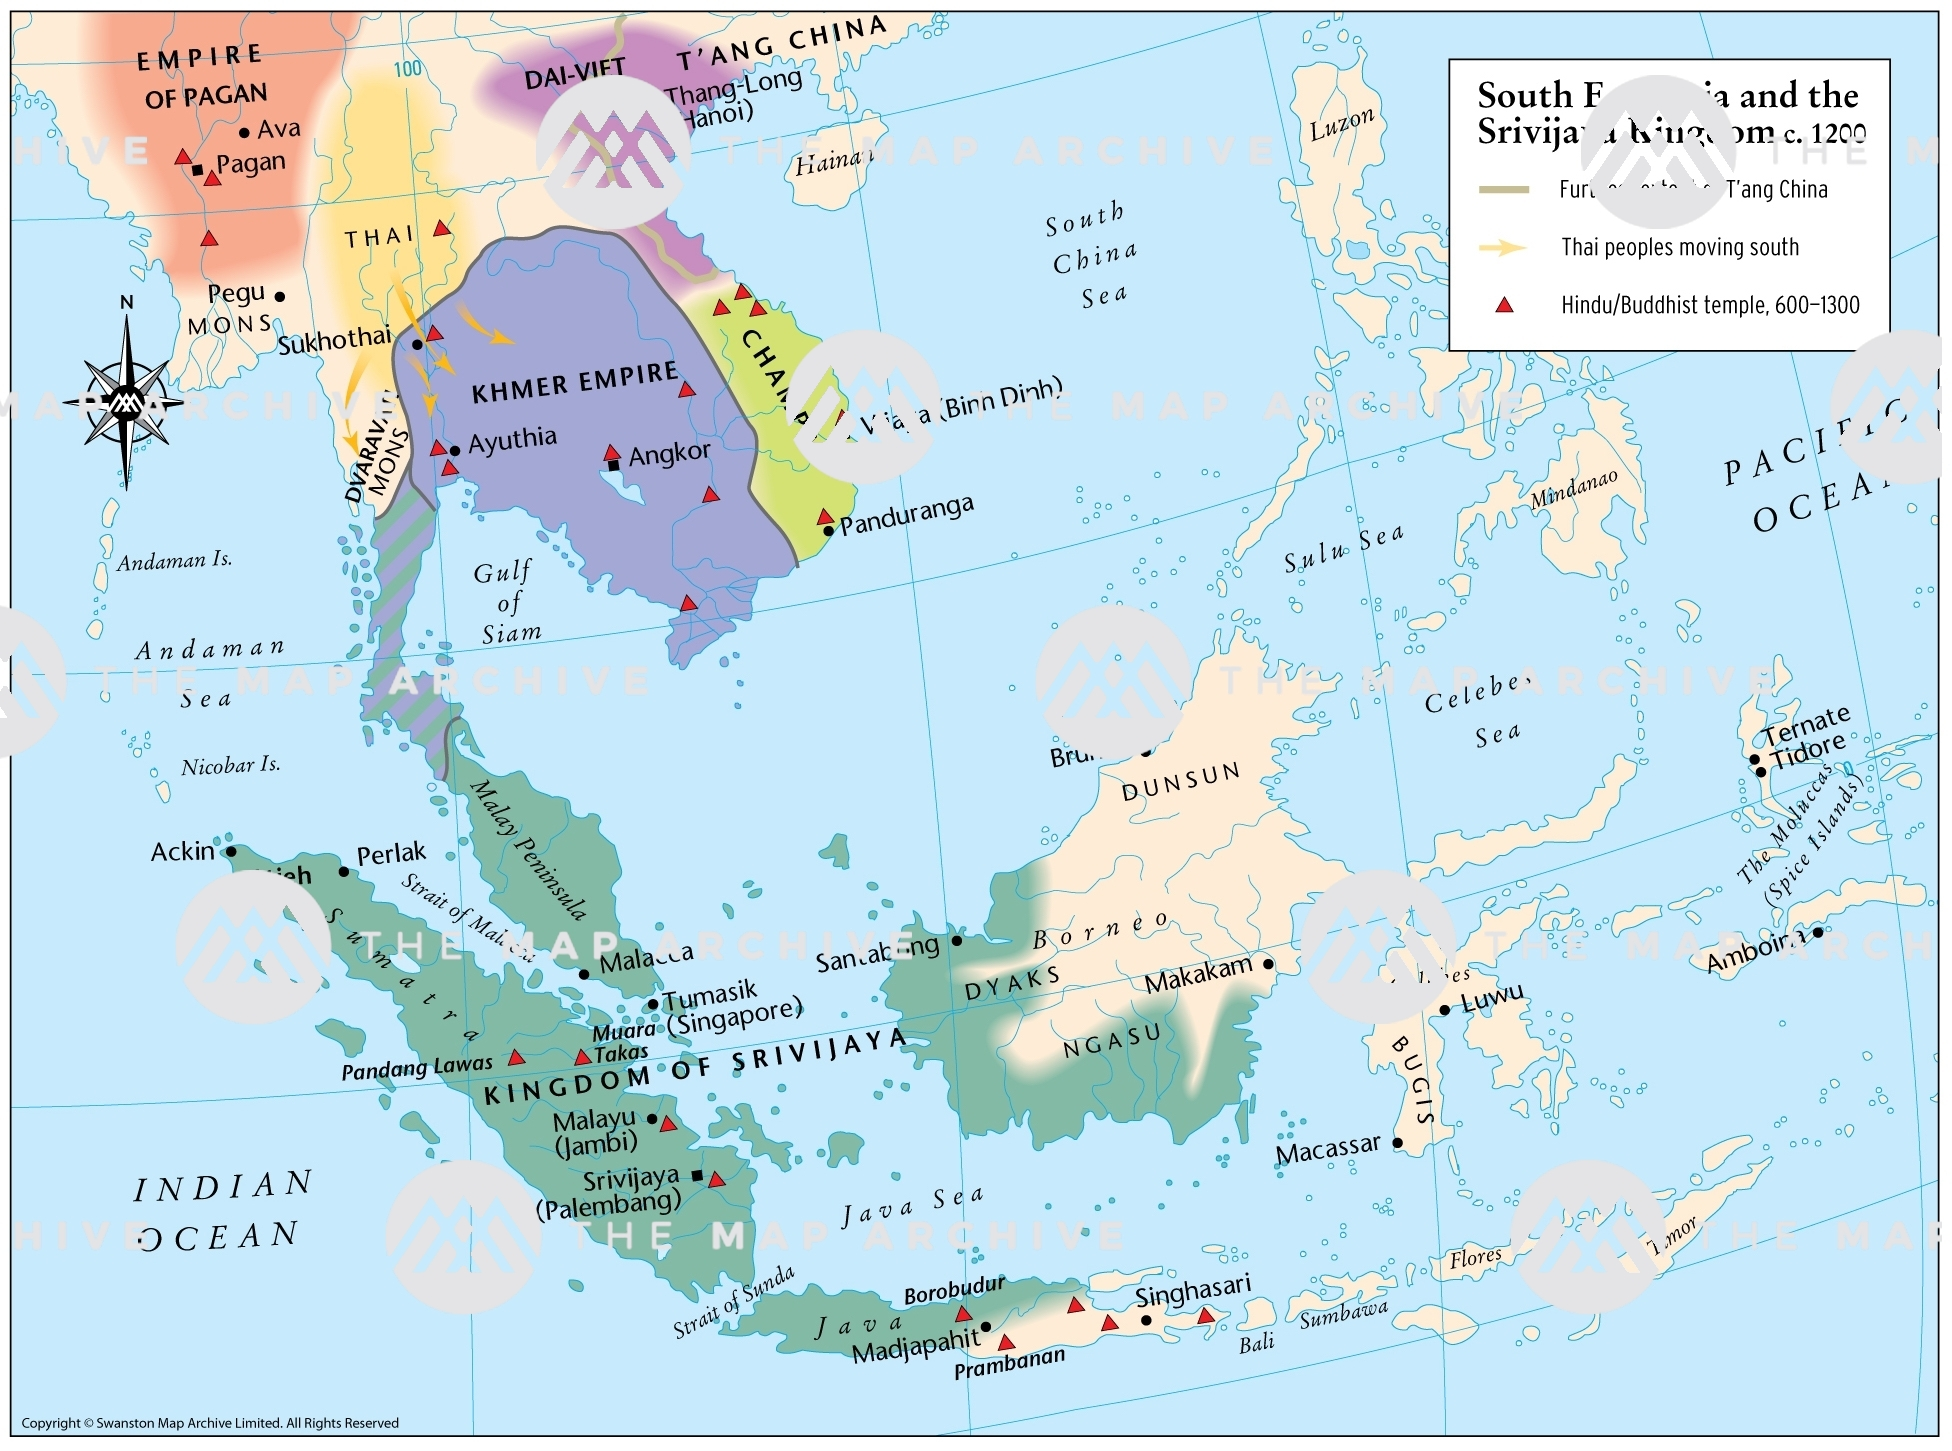 Picture of: South East Asia And The Srivijaya Kingdom C 1200